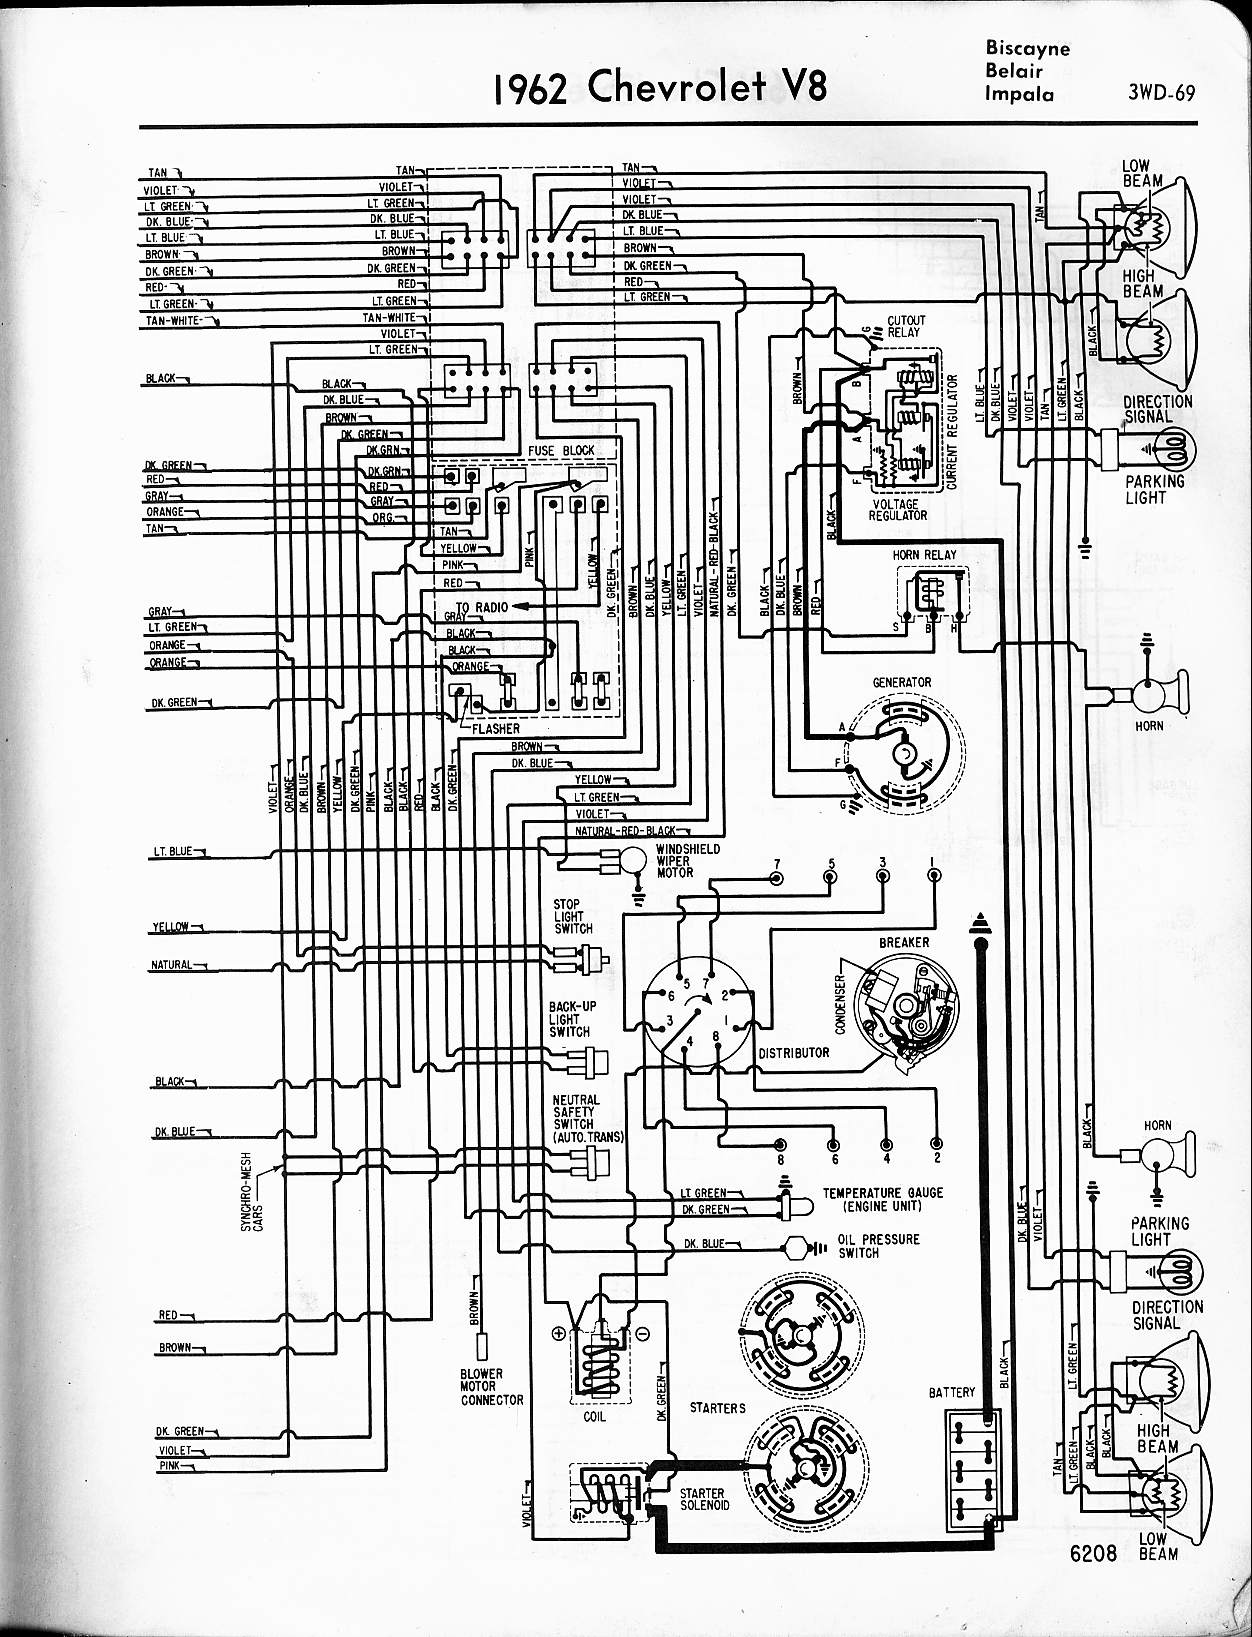 1964 Impala Wiring Diagram Free Guide And Troubleshooting Of 64 Chevy Harness Starting 28 Images Fuse Box